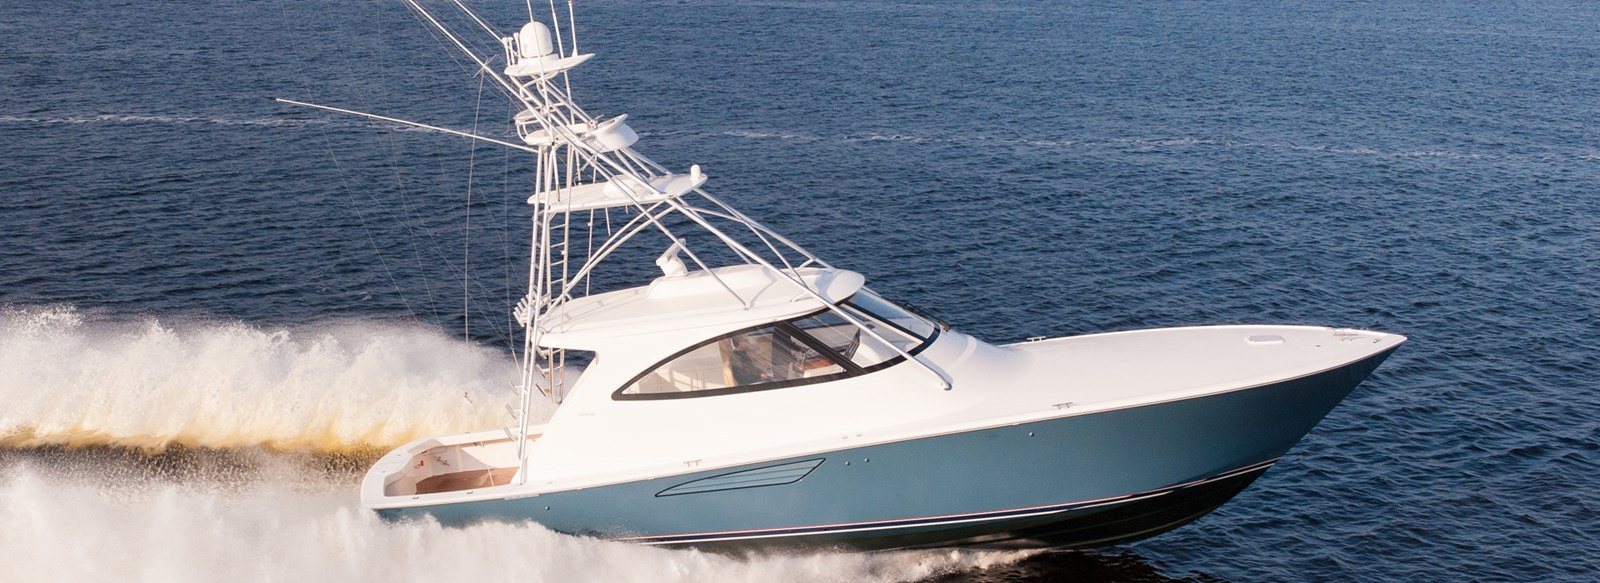 New Viking 52 Sport Tower Yachts For Sale